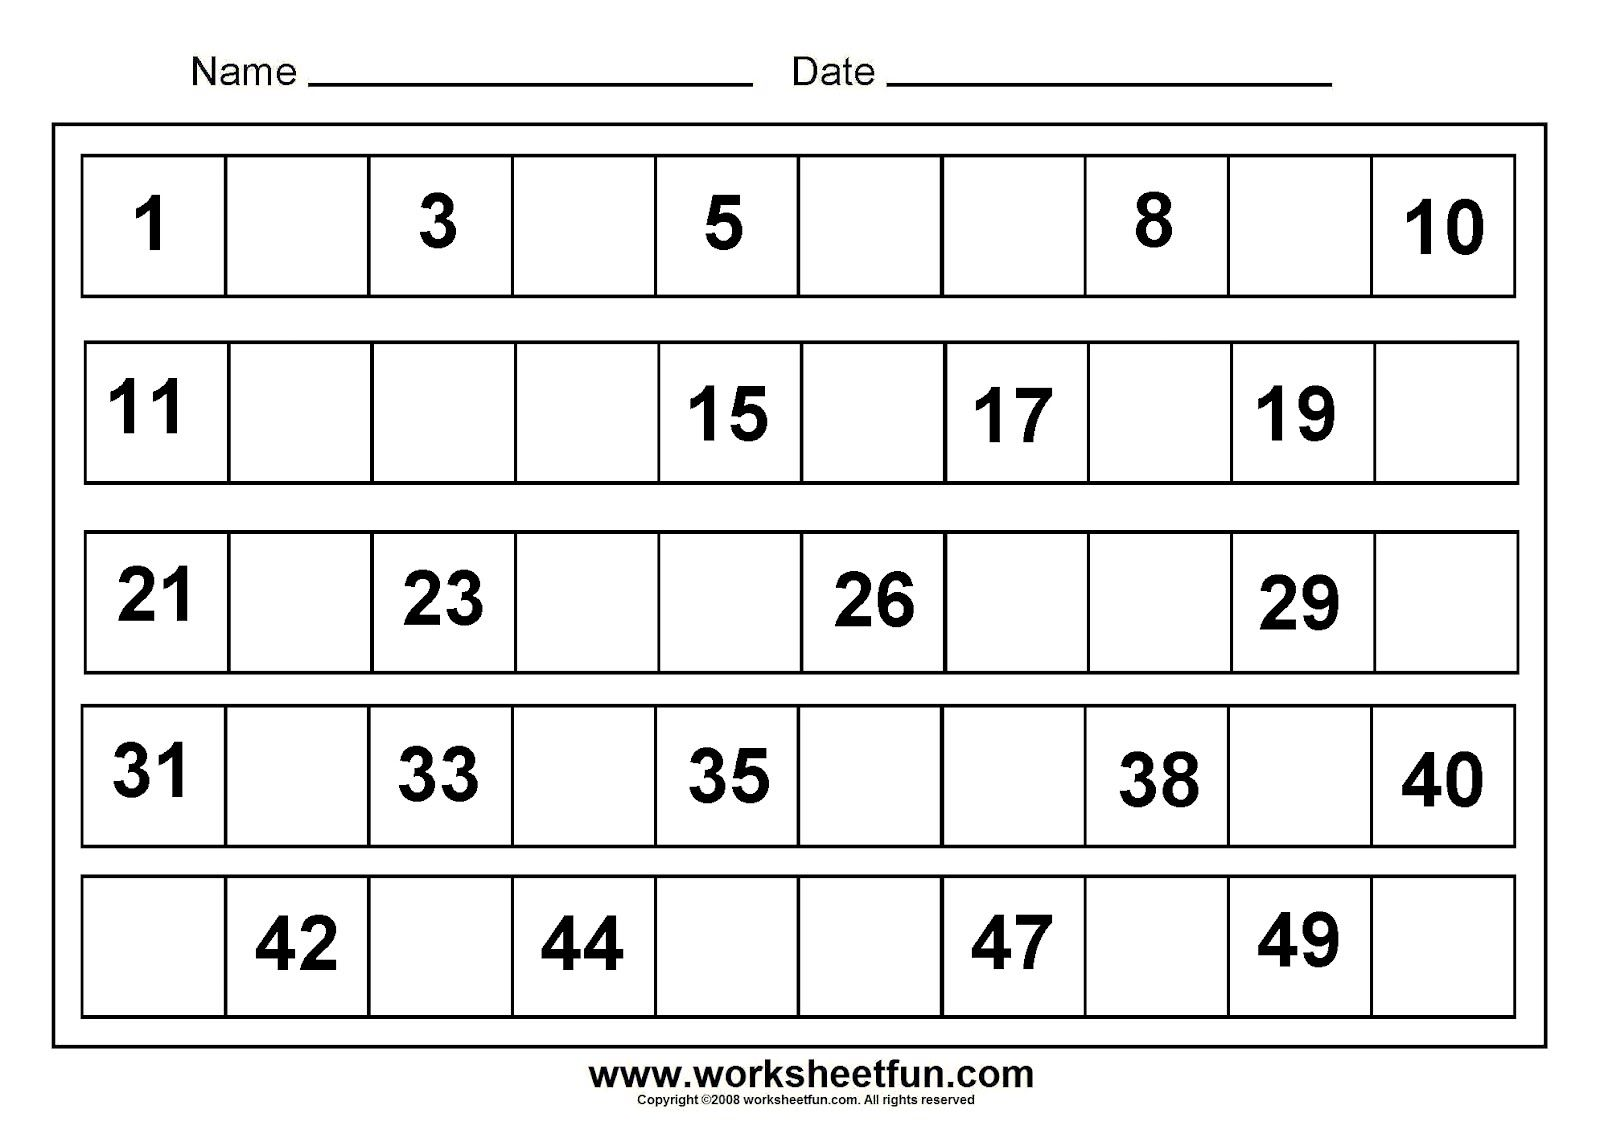 math worksheet : 1000 images about work sheets on pinterest  math worksheets  : Math For Kindergarten Worksheets